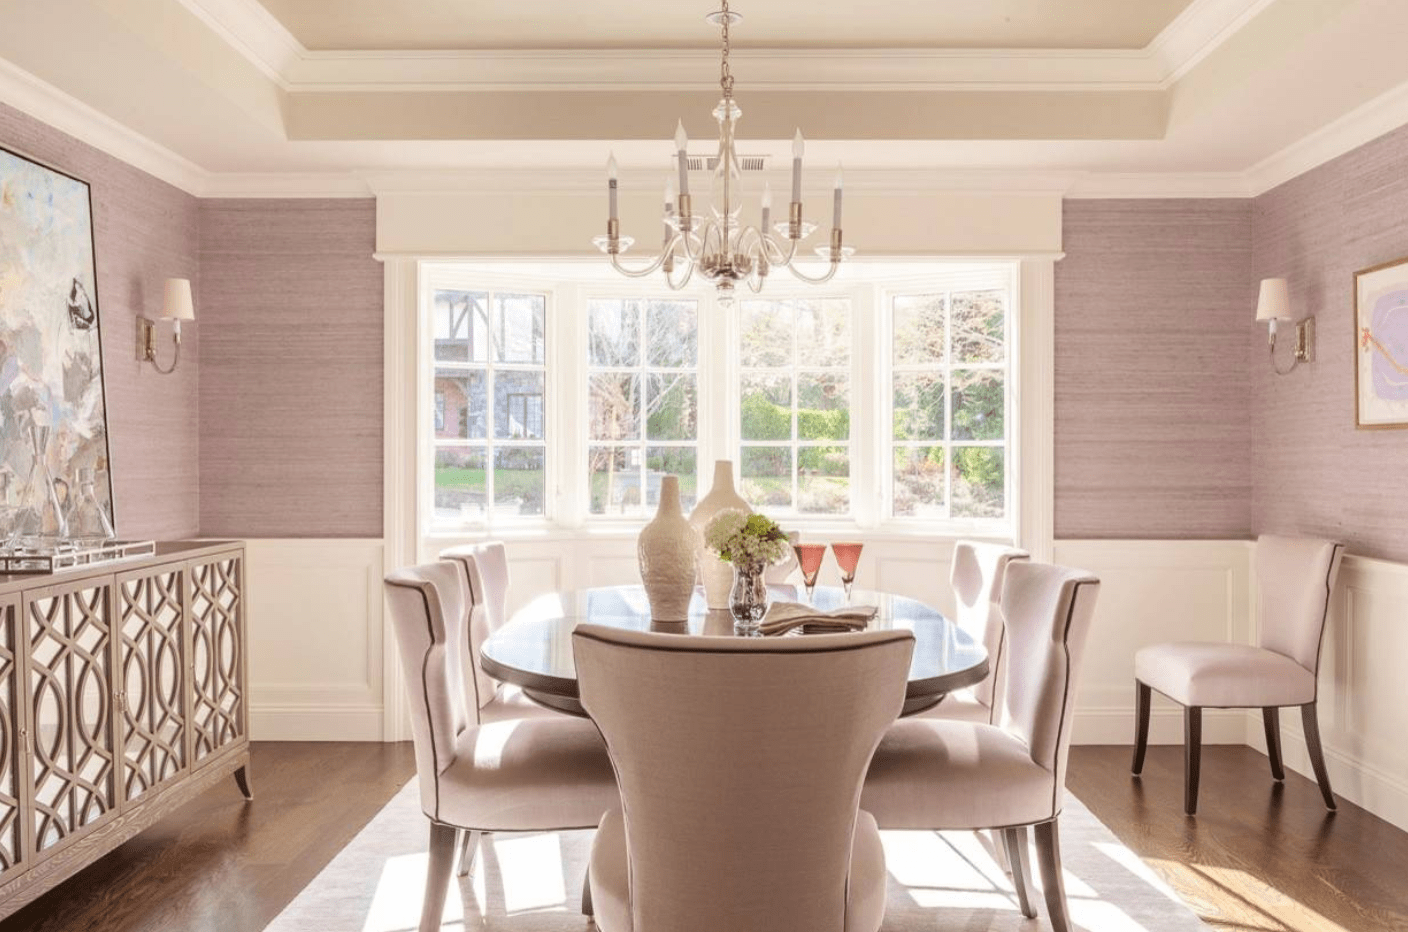 A bright dining room featuring a cozy dining table and chairs set. The room features pink walls with wall sconces. The area is lighted by a gorgeous chandelier.